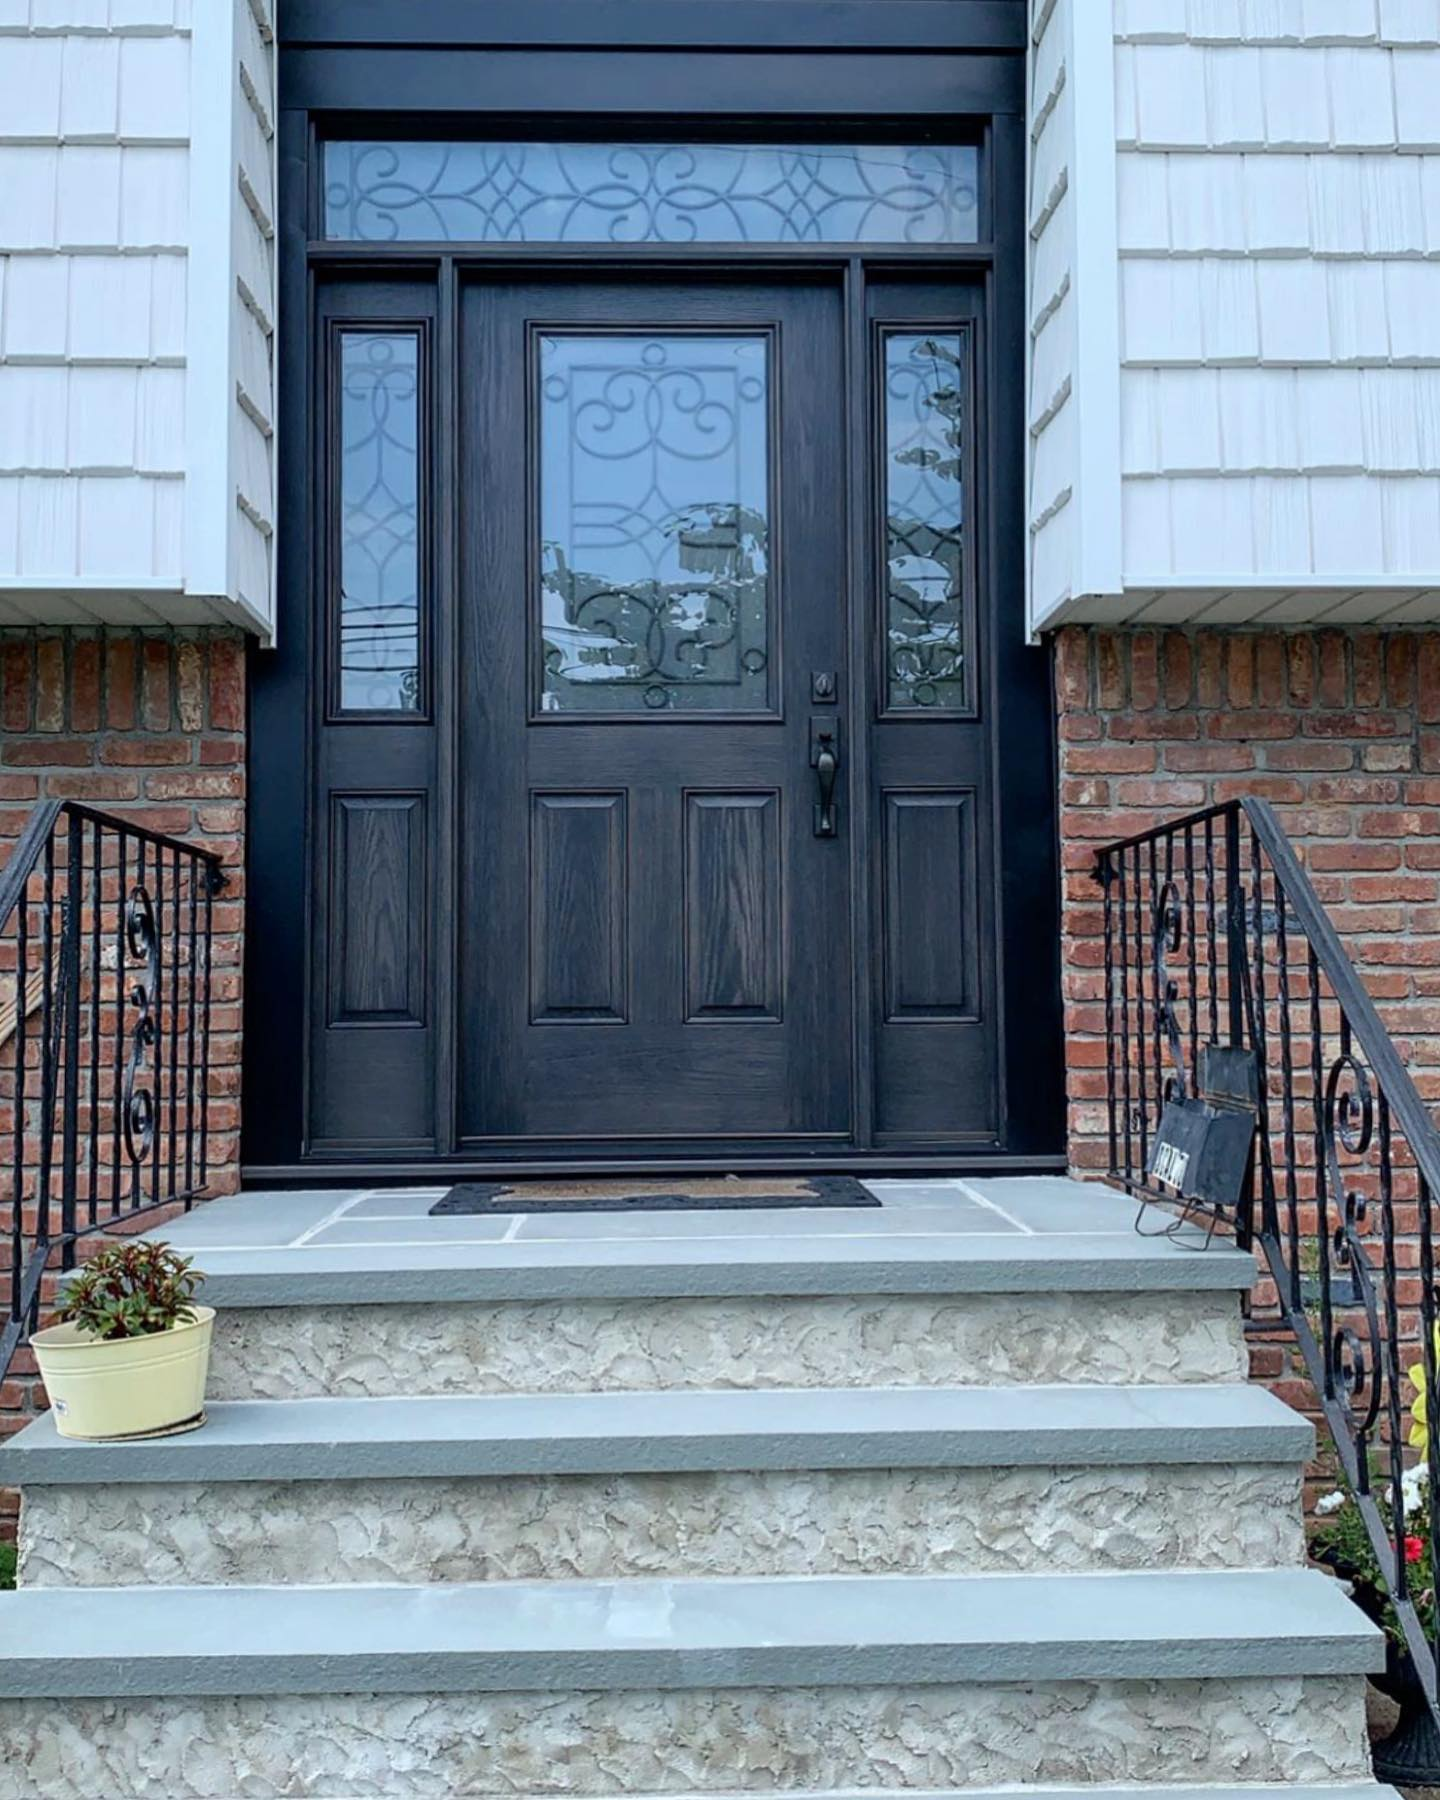 Therma-Tru door with transom and sidelights